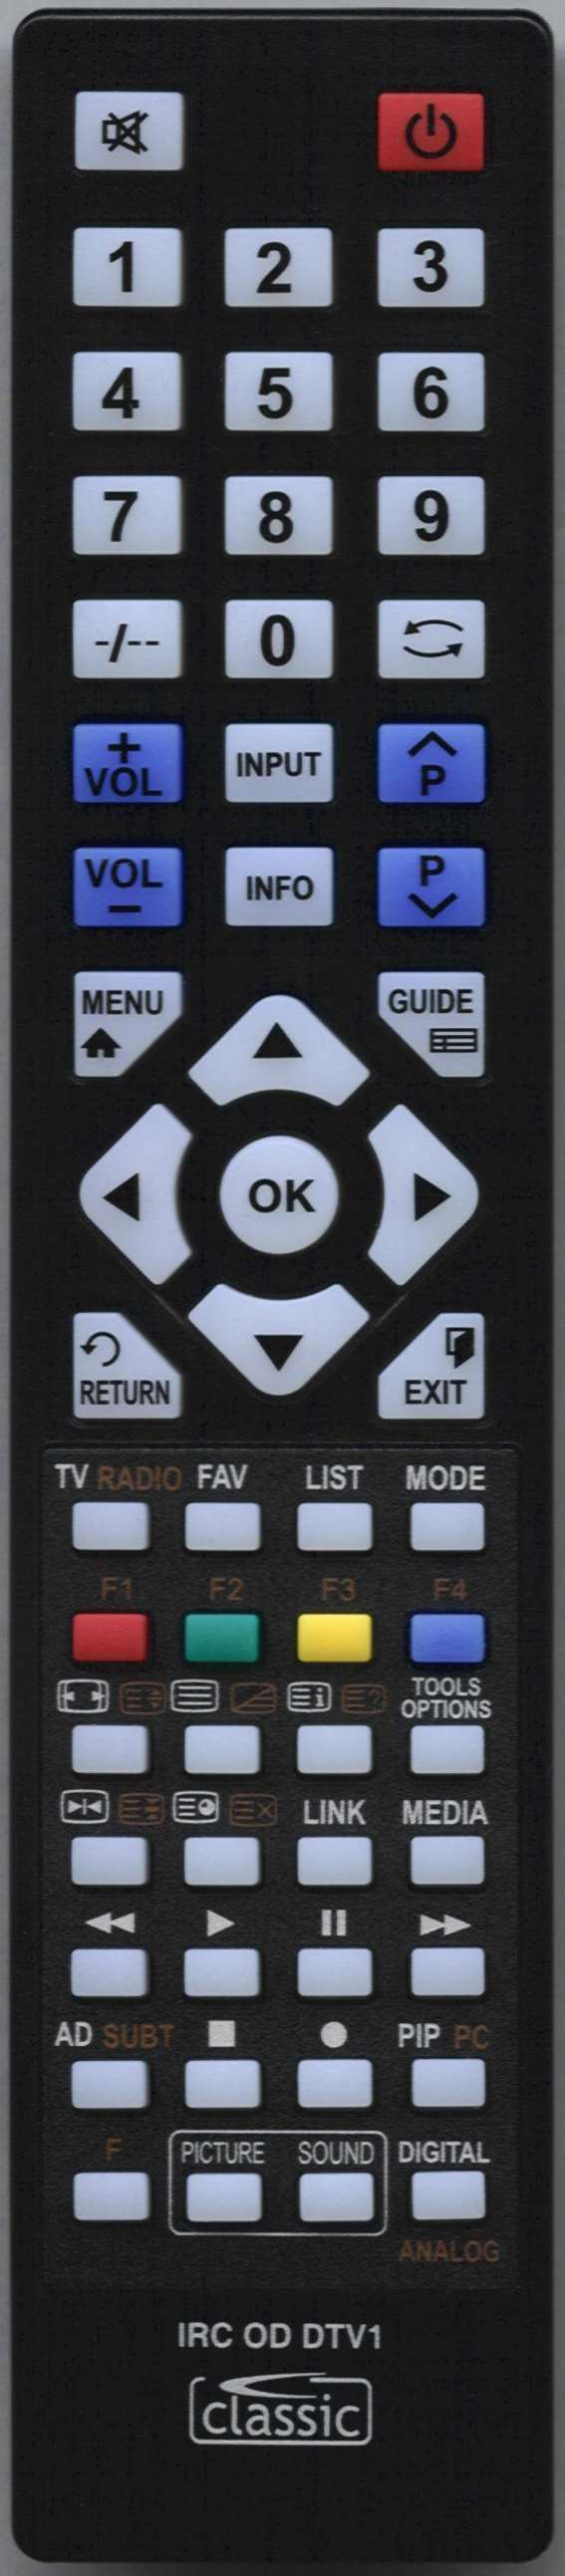 BLAUPUNKT 40/148M-GB-11B-FEGPX-UK Remote Control Alternative